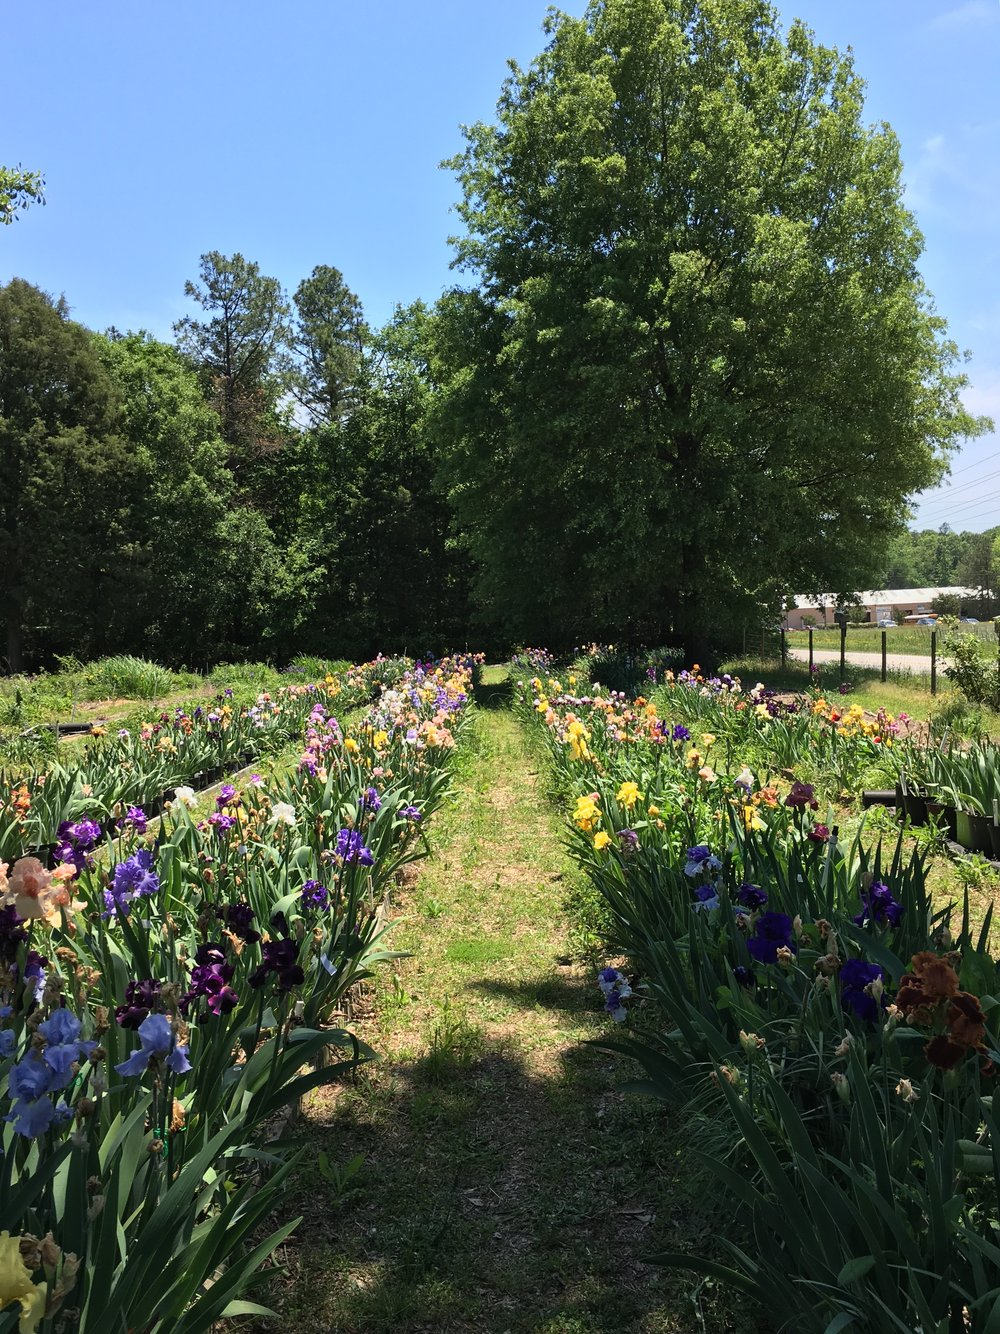 Annual Flower Fields at Heritage Fields Farm, South Carolina